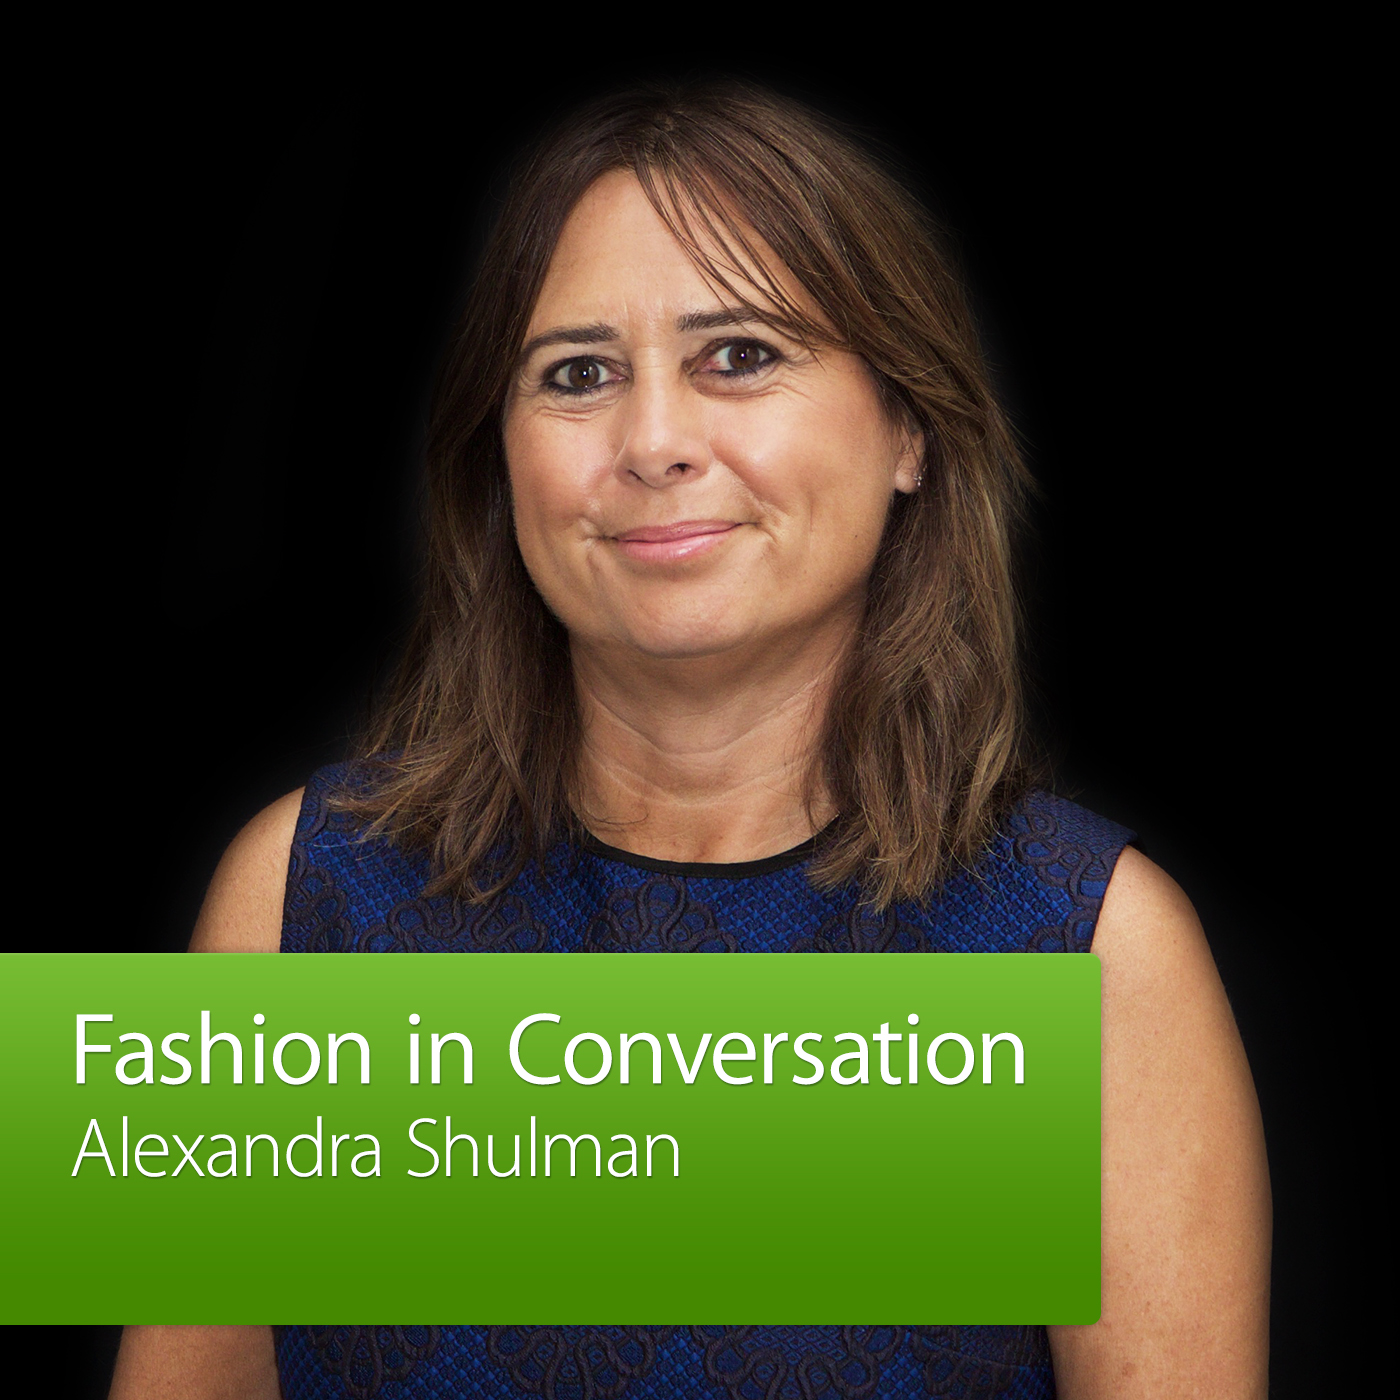 Alexandra Shulman: Fashion in Conversation